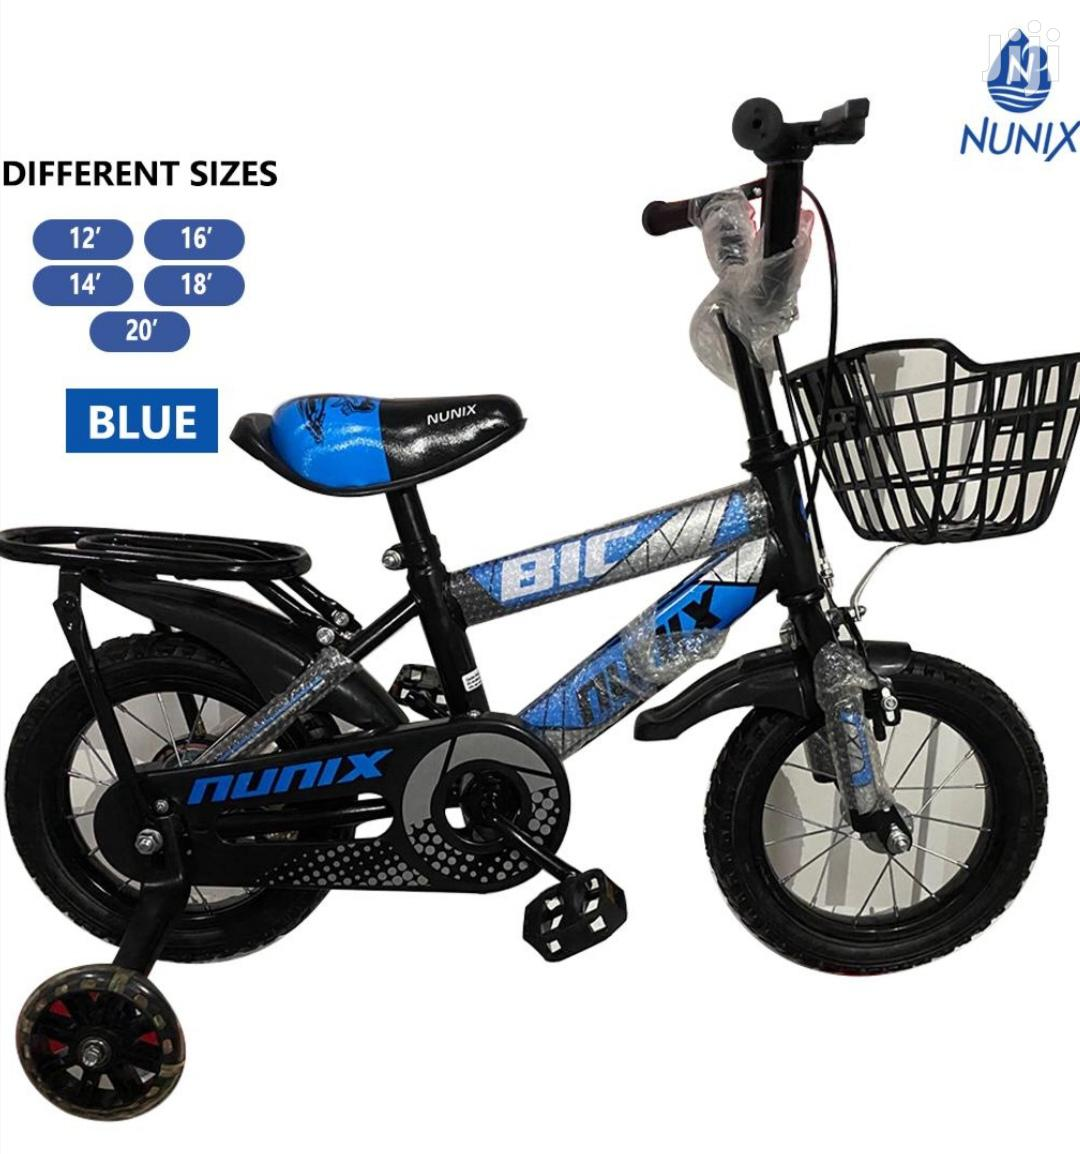 Kids Bicycle Size 12 Best Quality ( Kids Age 3-6 Years Old )